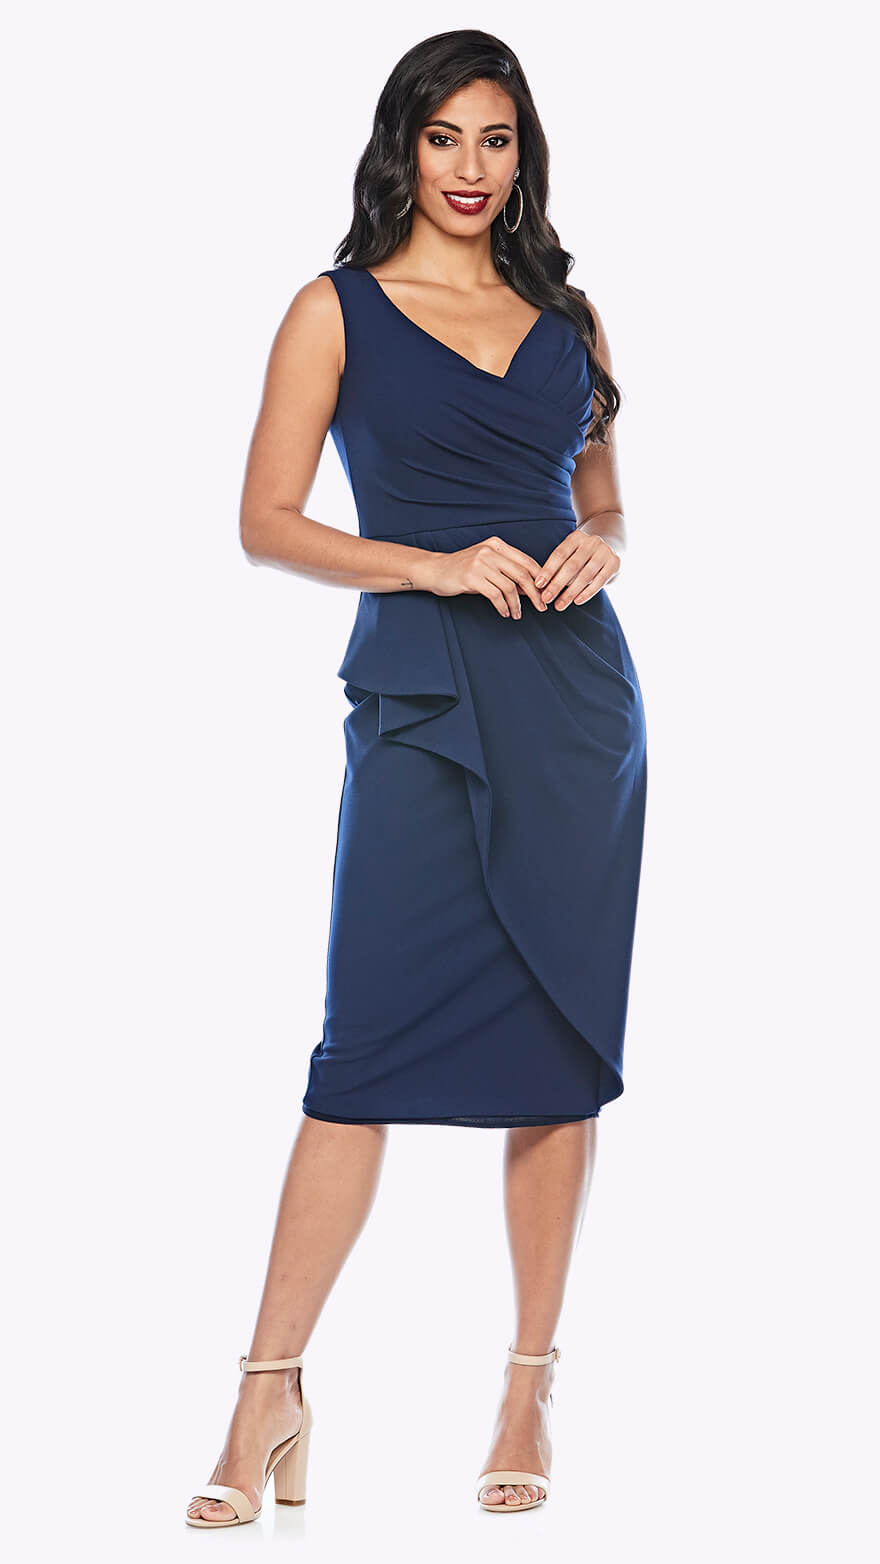 Z0231 Sleeveless cocktail dress with waterfall style wrap skirt